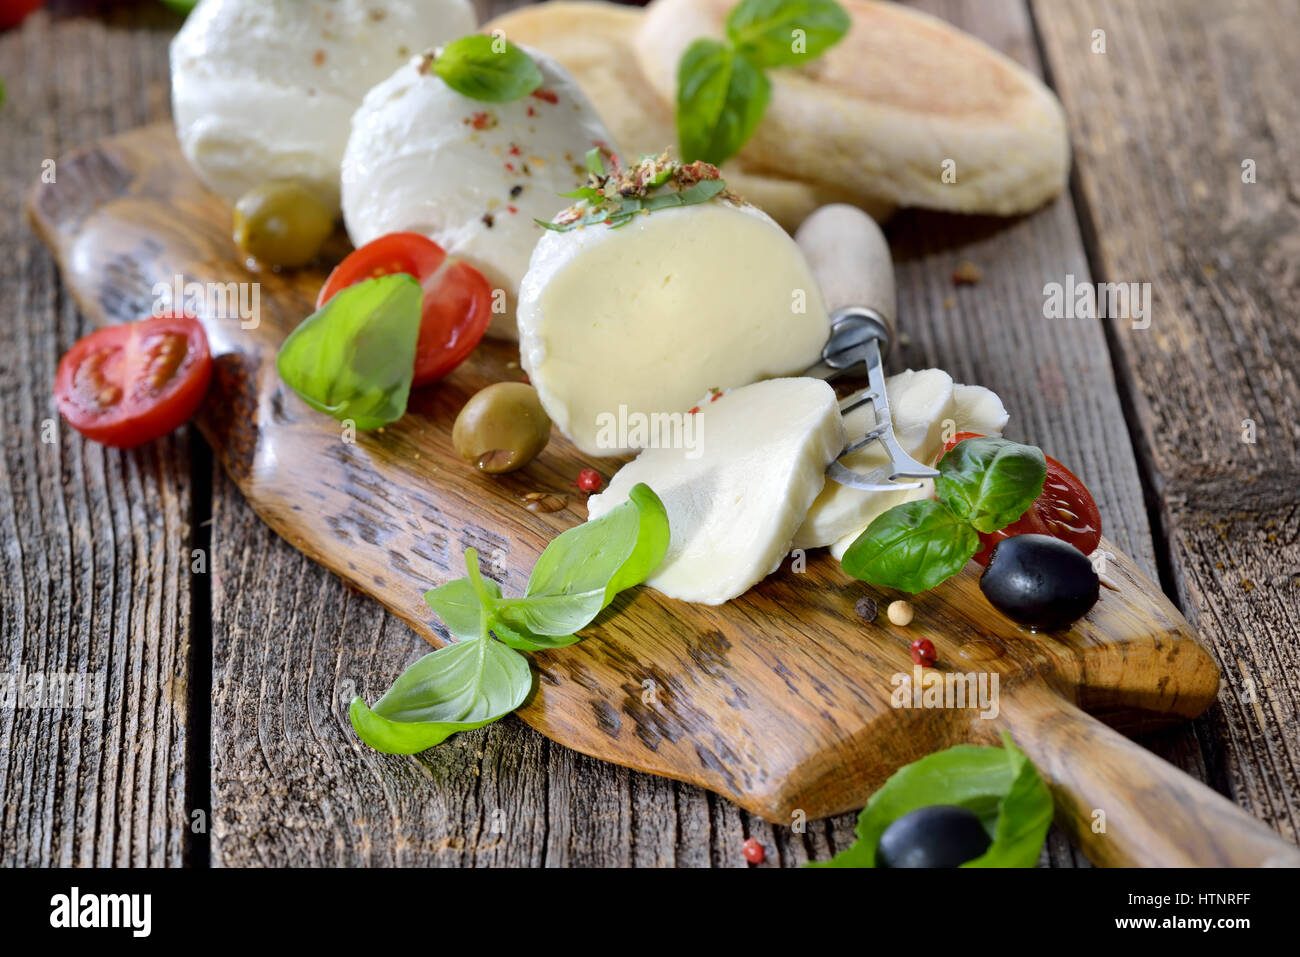 Italian mozzarella cheese snack with cherry tomatoes, basil and olives served on a wooden board with toast bread - Stock Image